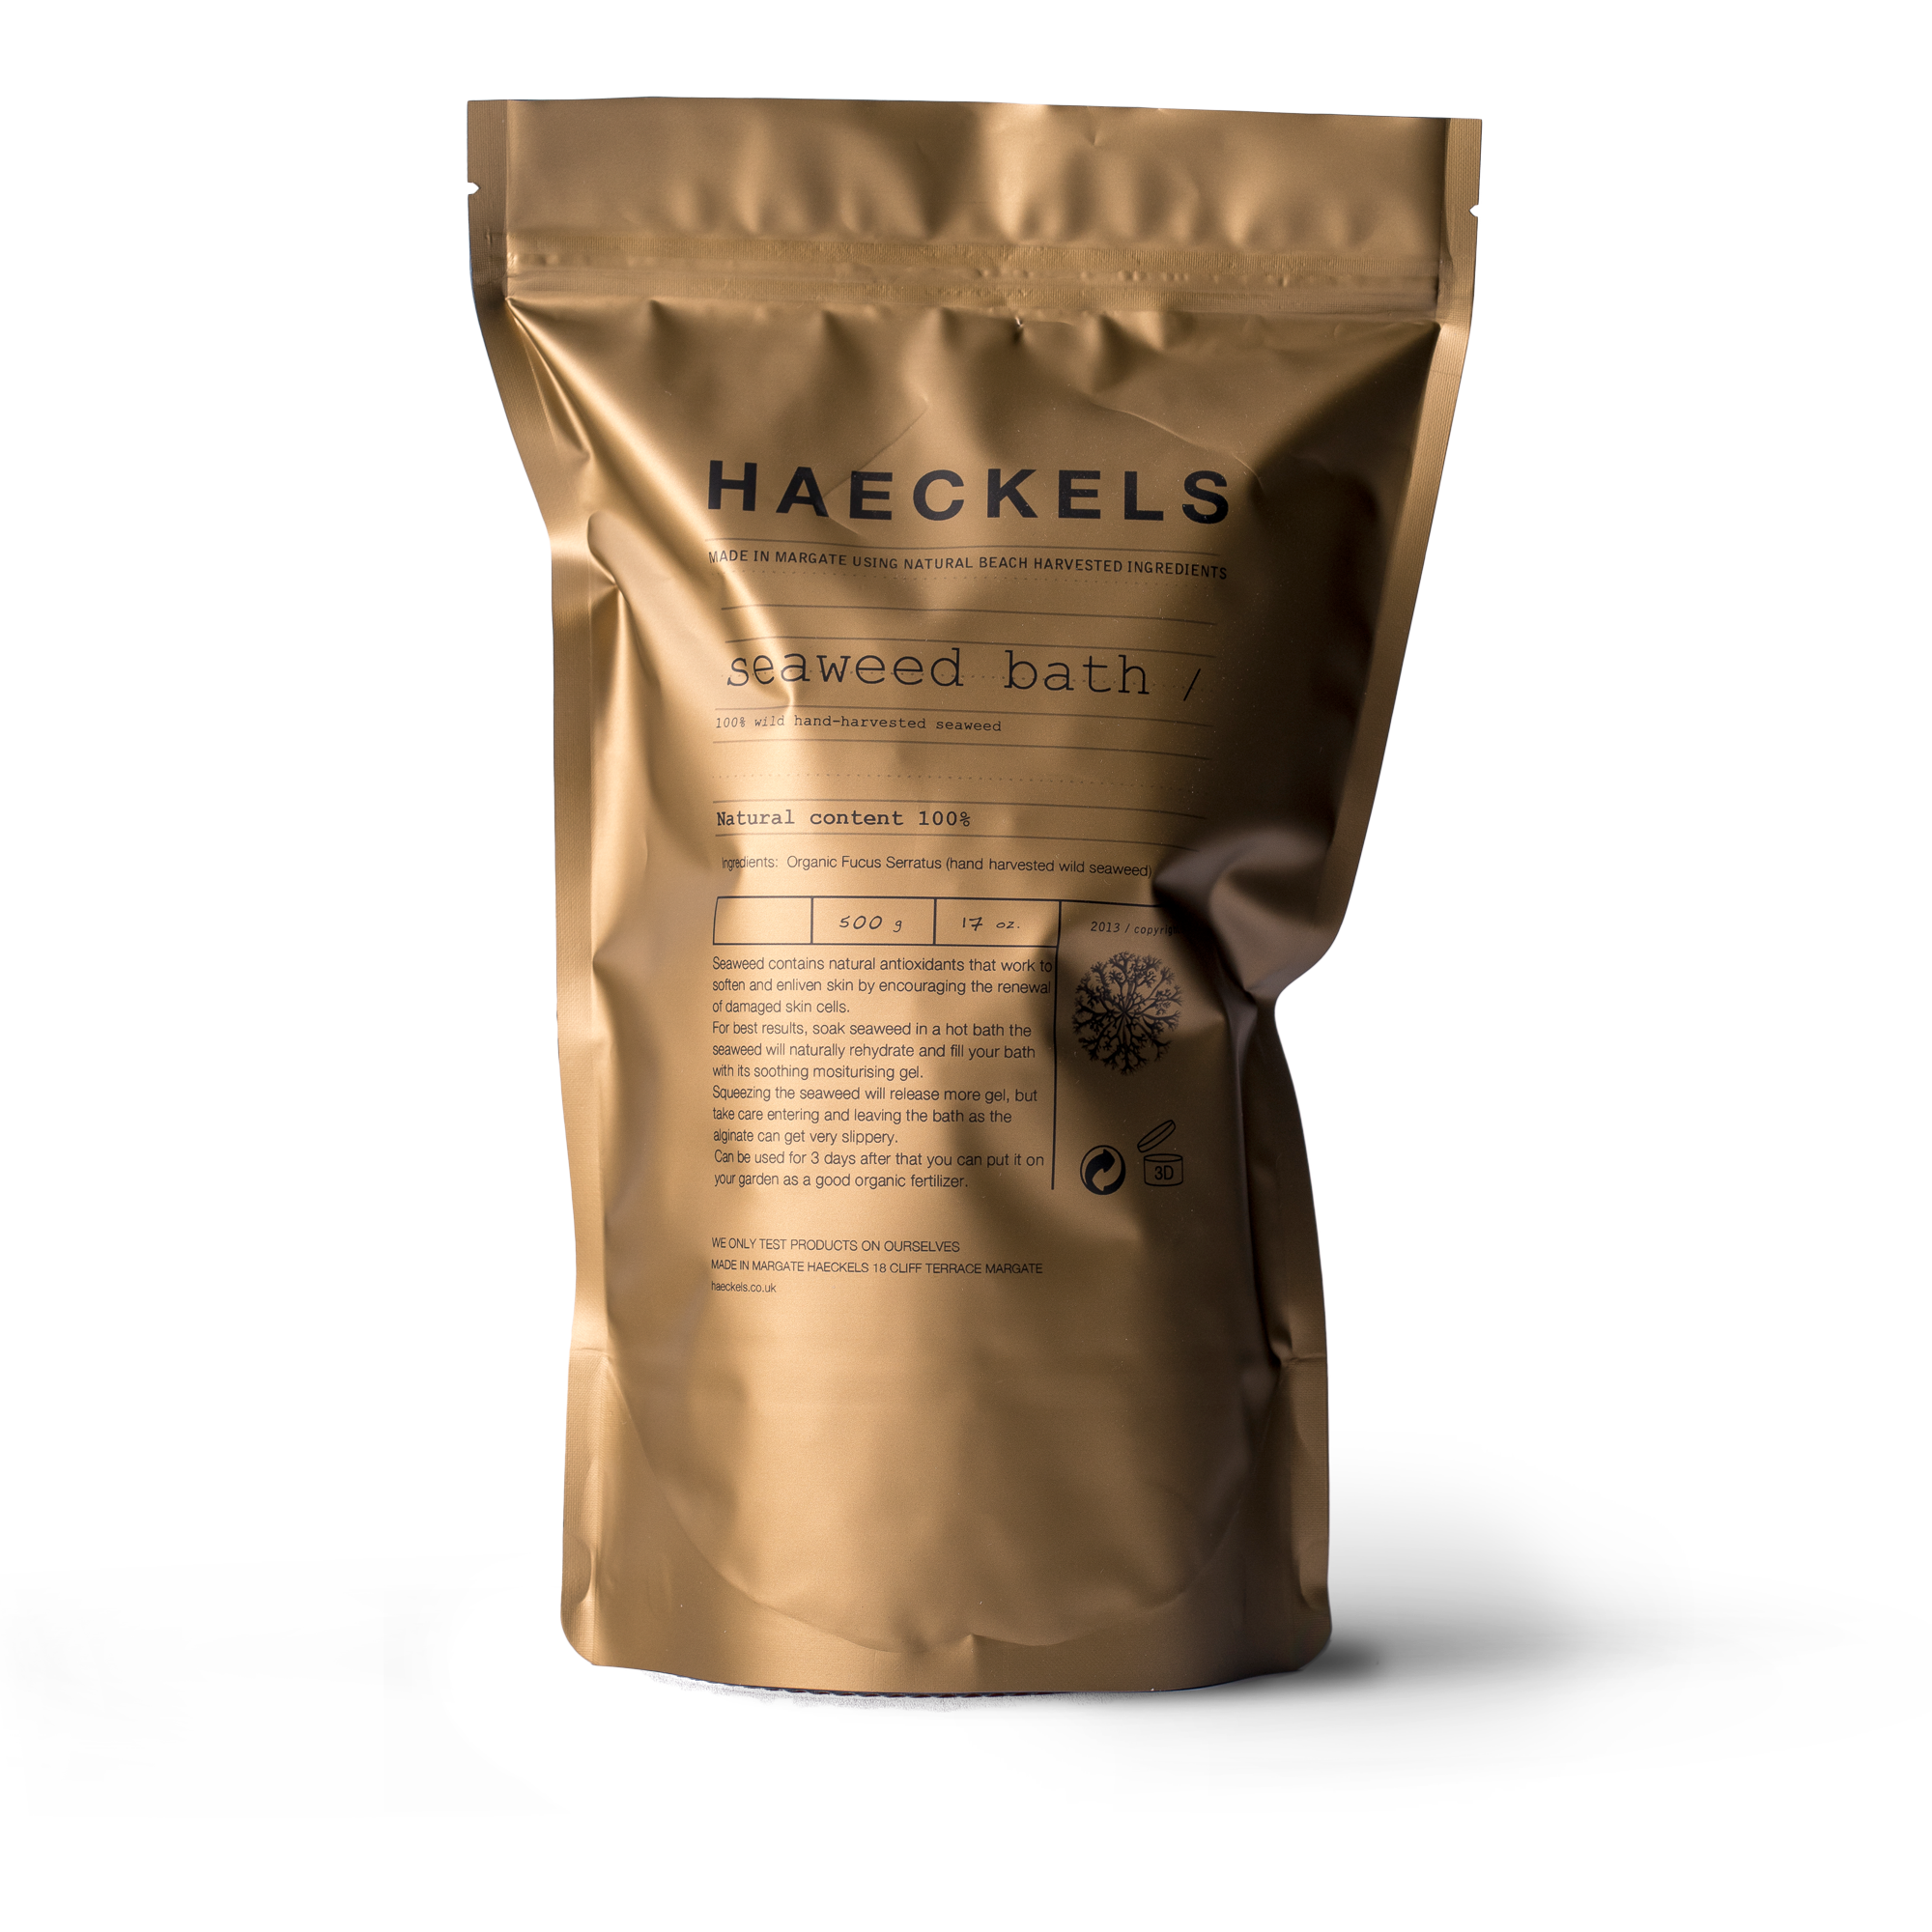 Traditional Seaweed Bath By Haeckels 100 Natural And Locally Harvested